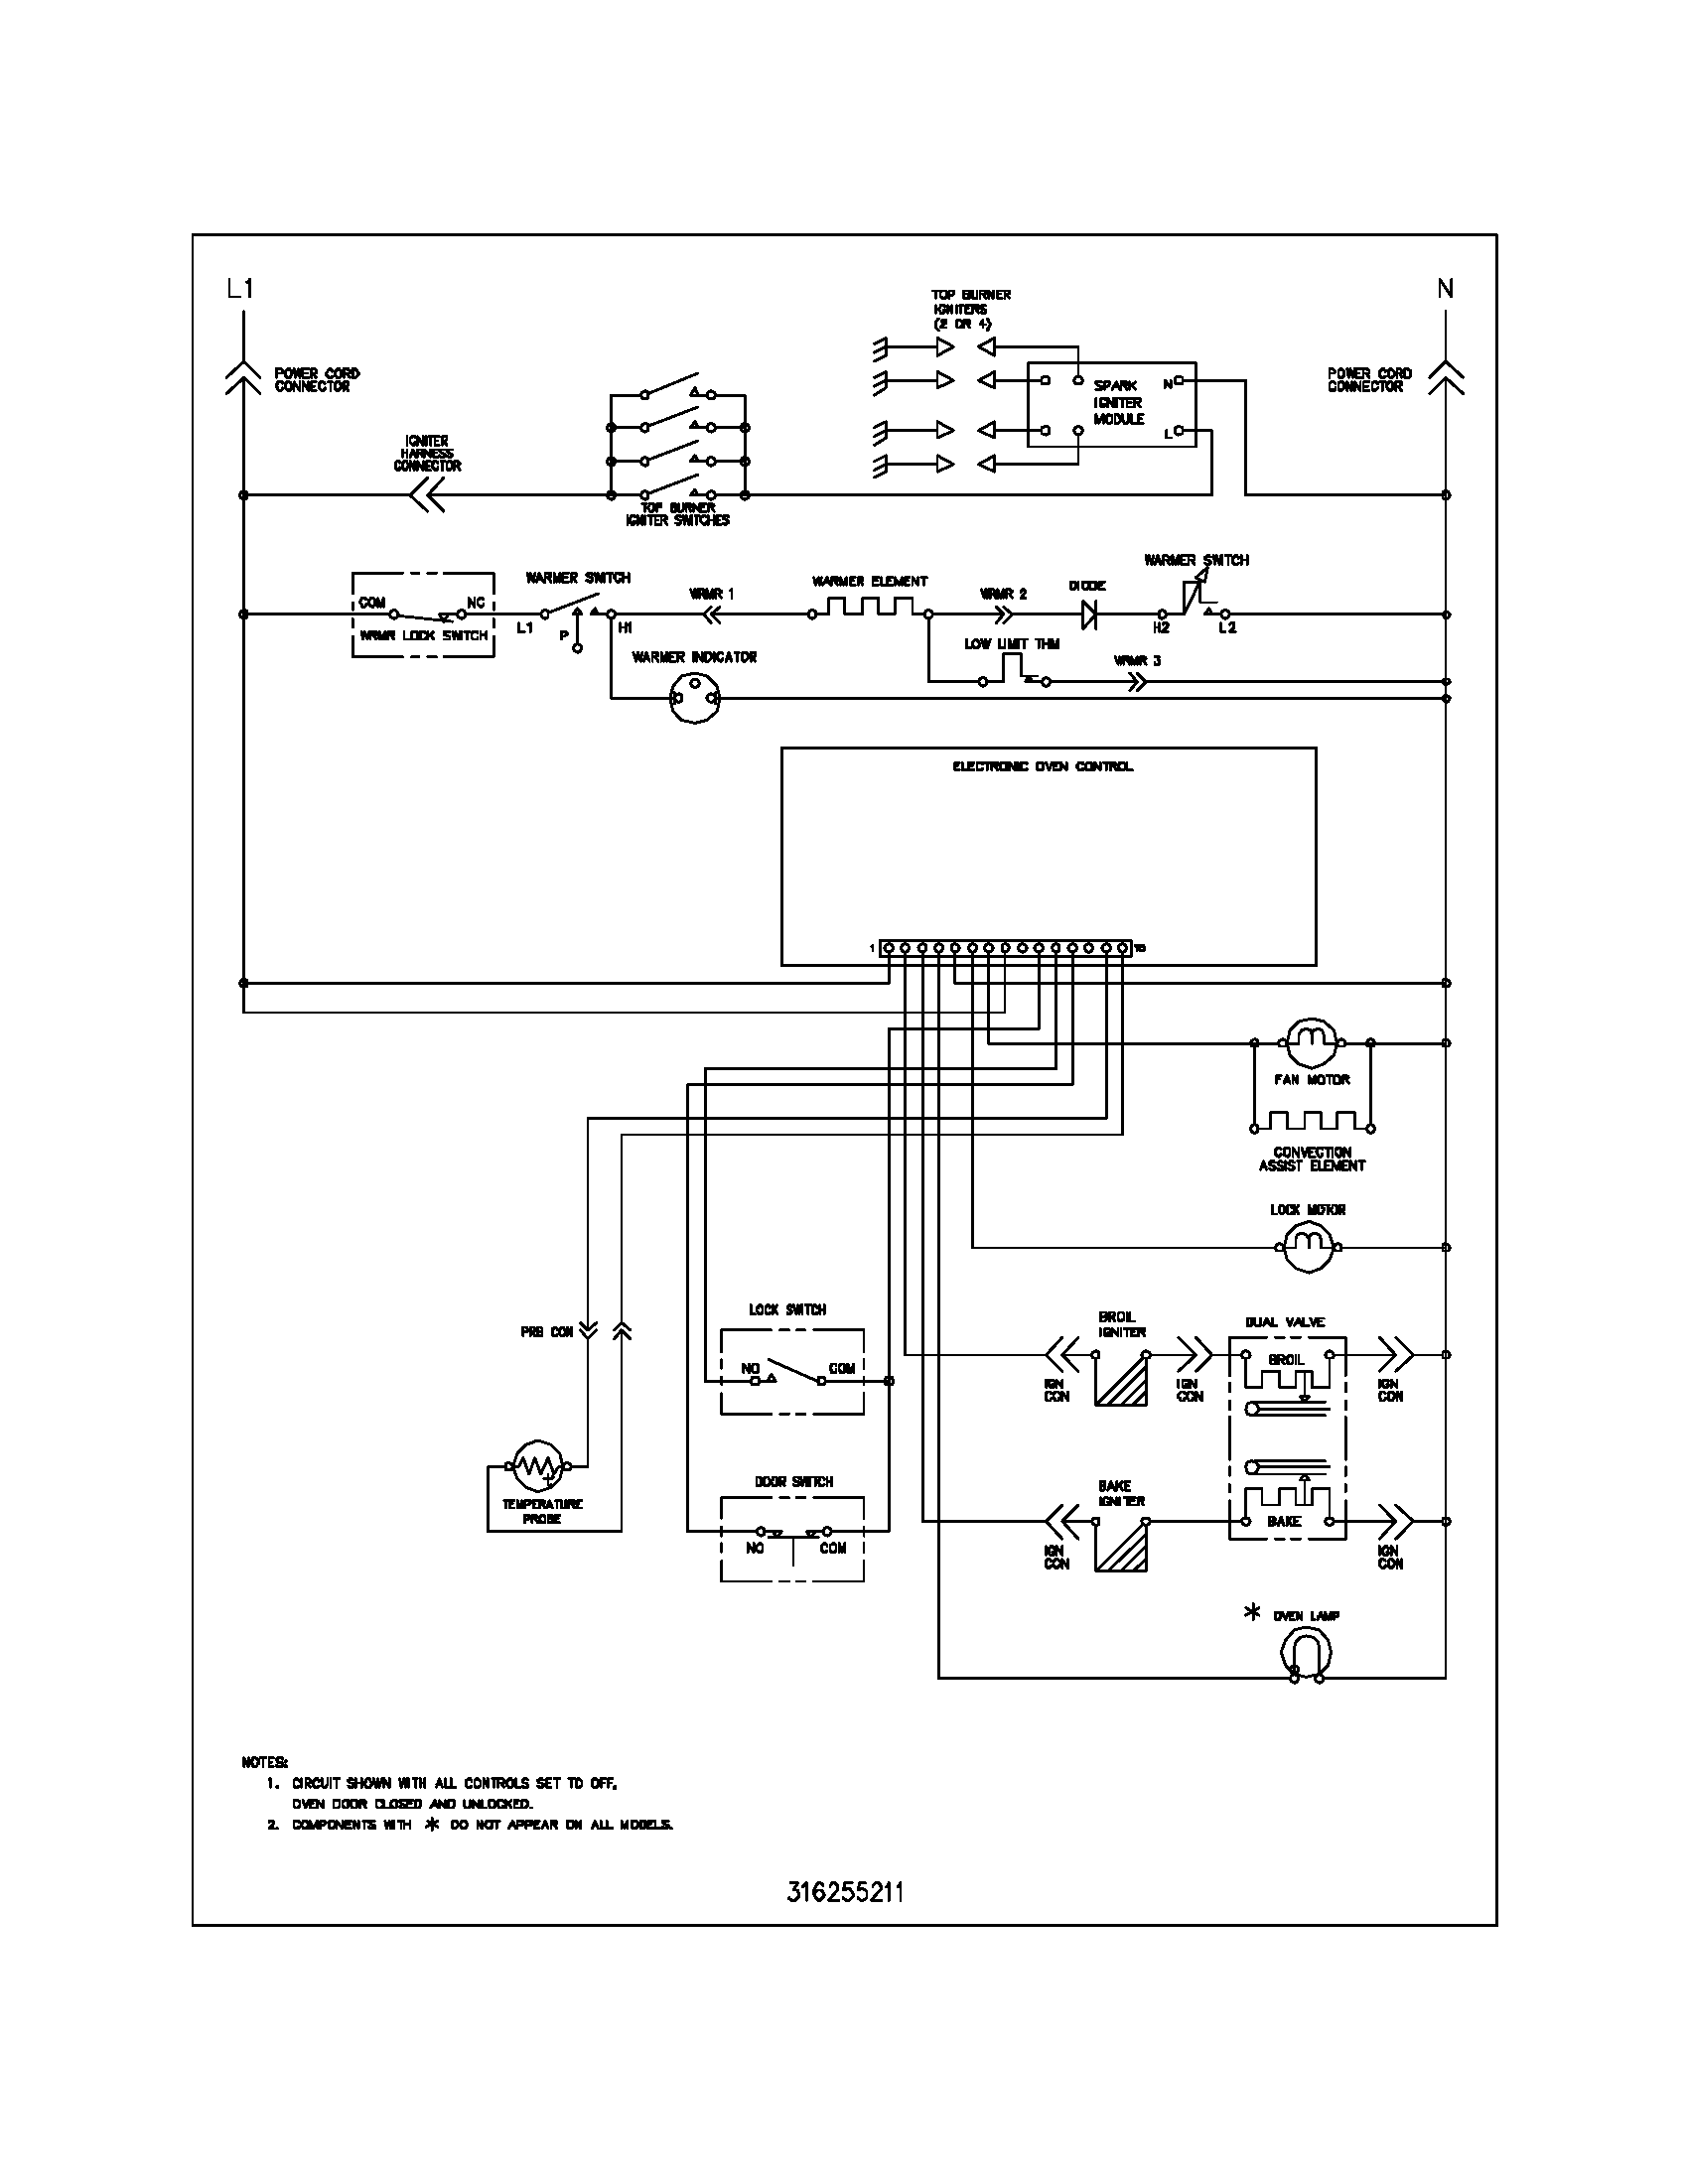 jbp24 ge oven wiring schematic wiring diagram techniccont gas oven wiring  diagram wiring diagram centrecont gas